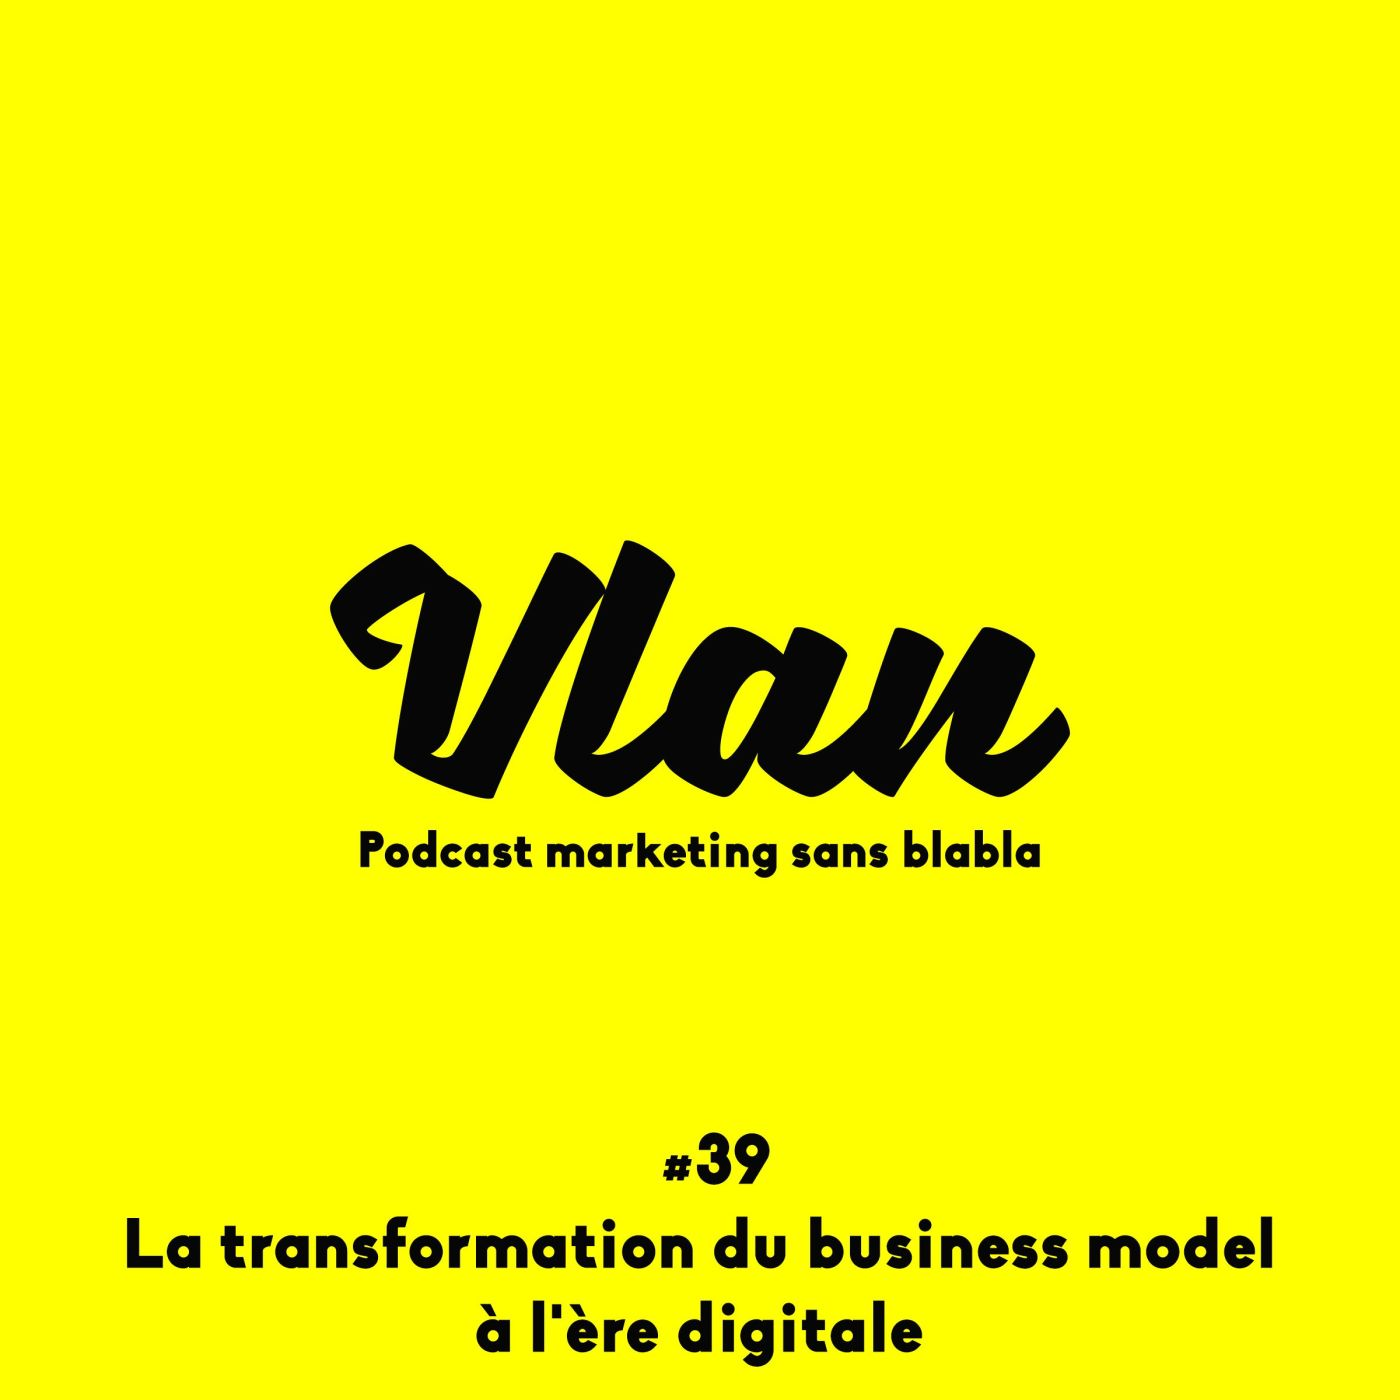 Vlan #39 La transformation du business model à l'ère digitale avec Eric Ducournau